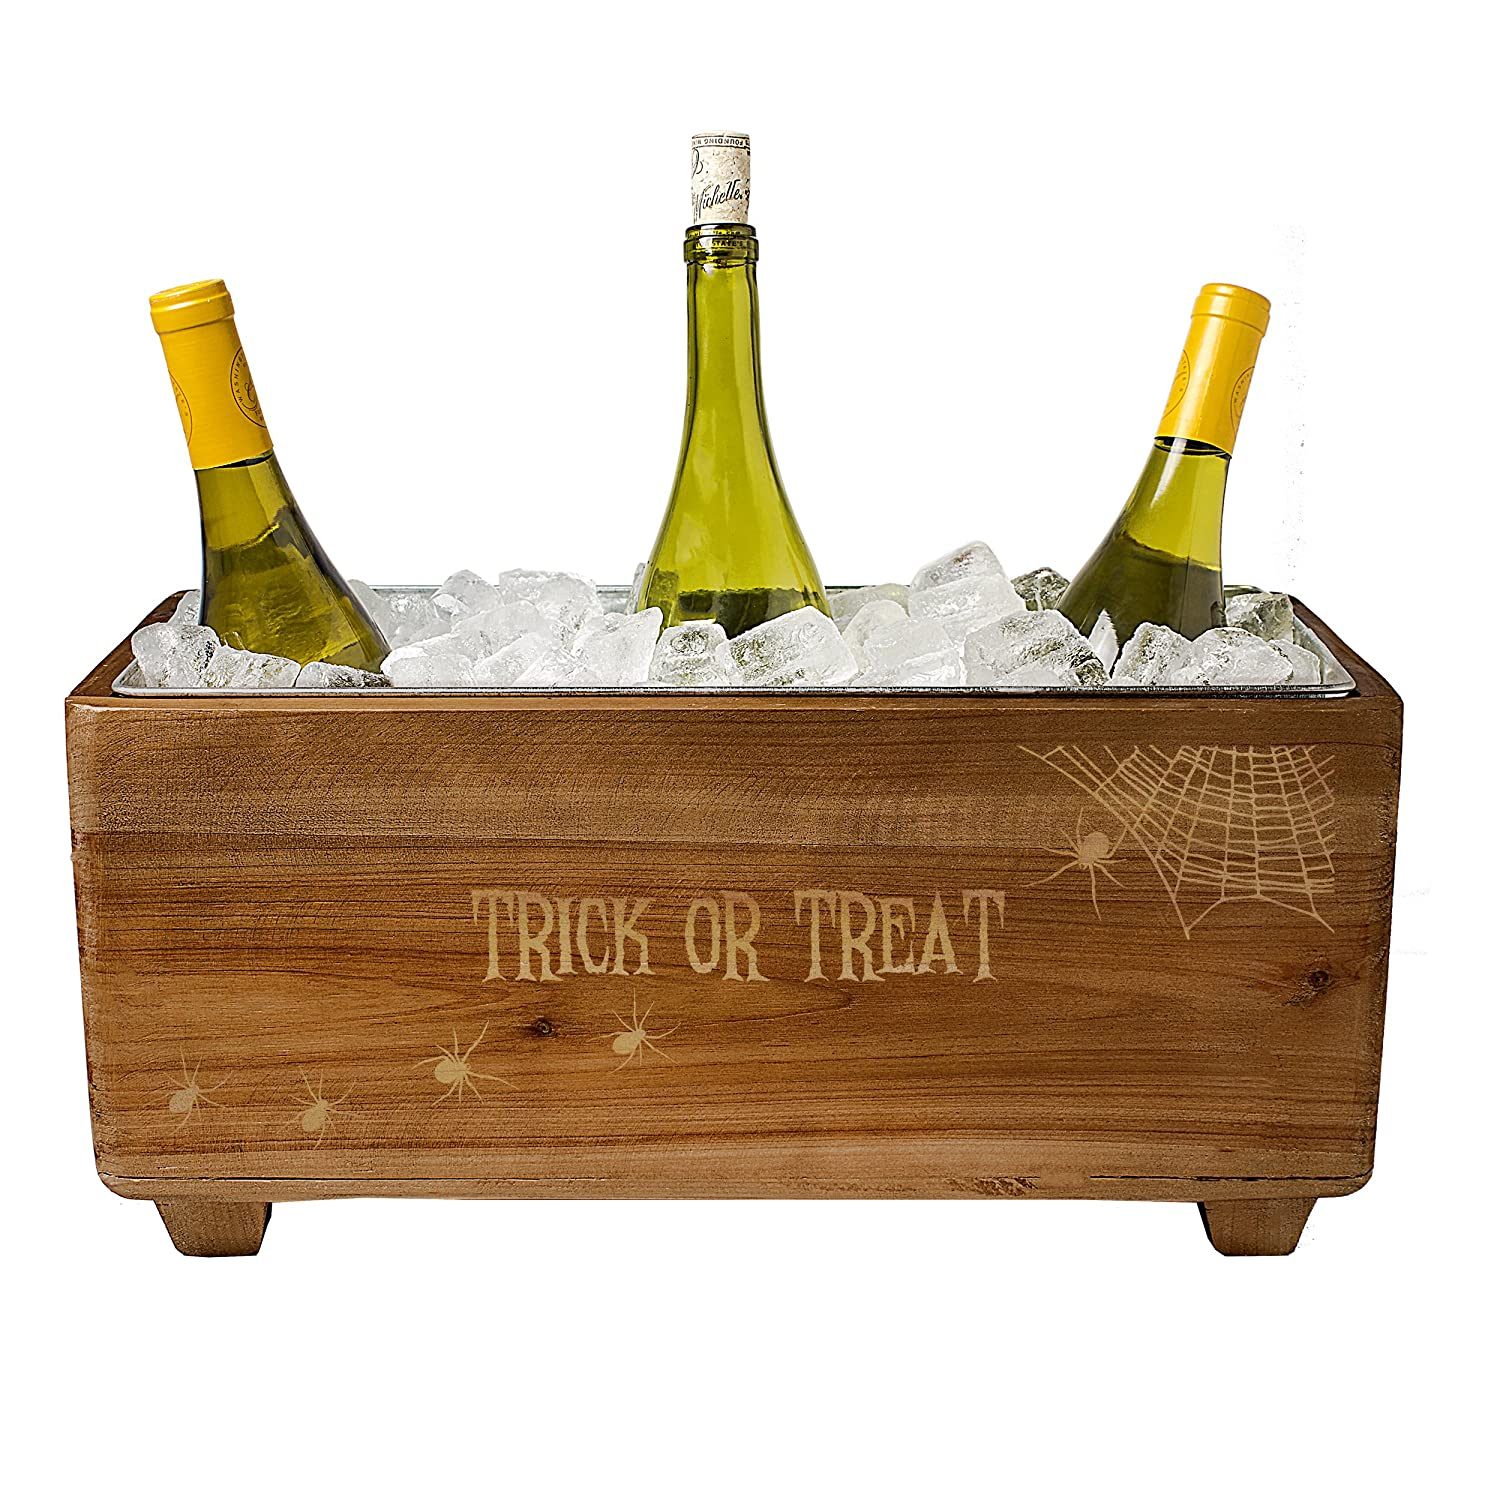 Cathy's Concepts Halloween Wooden Trough Wine Chiller, One Size, Brown Cathy' s Concepts HW-2294SP-ST